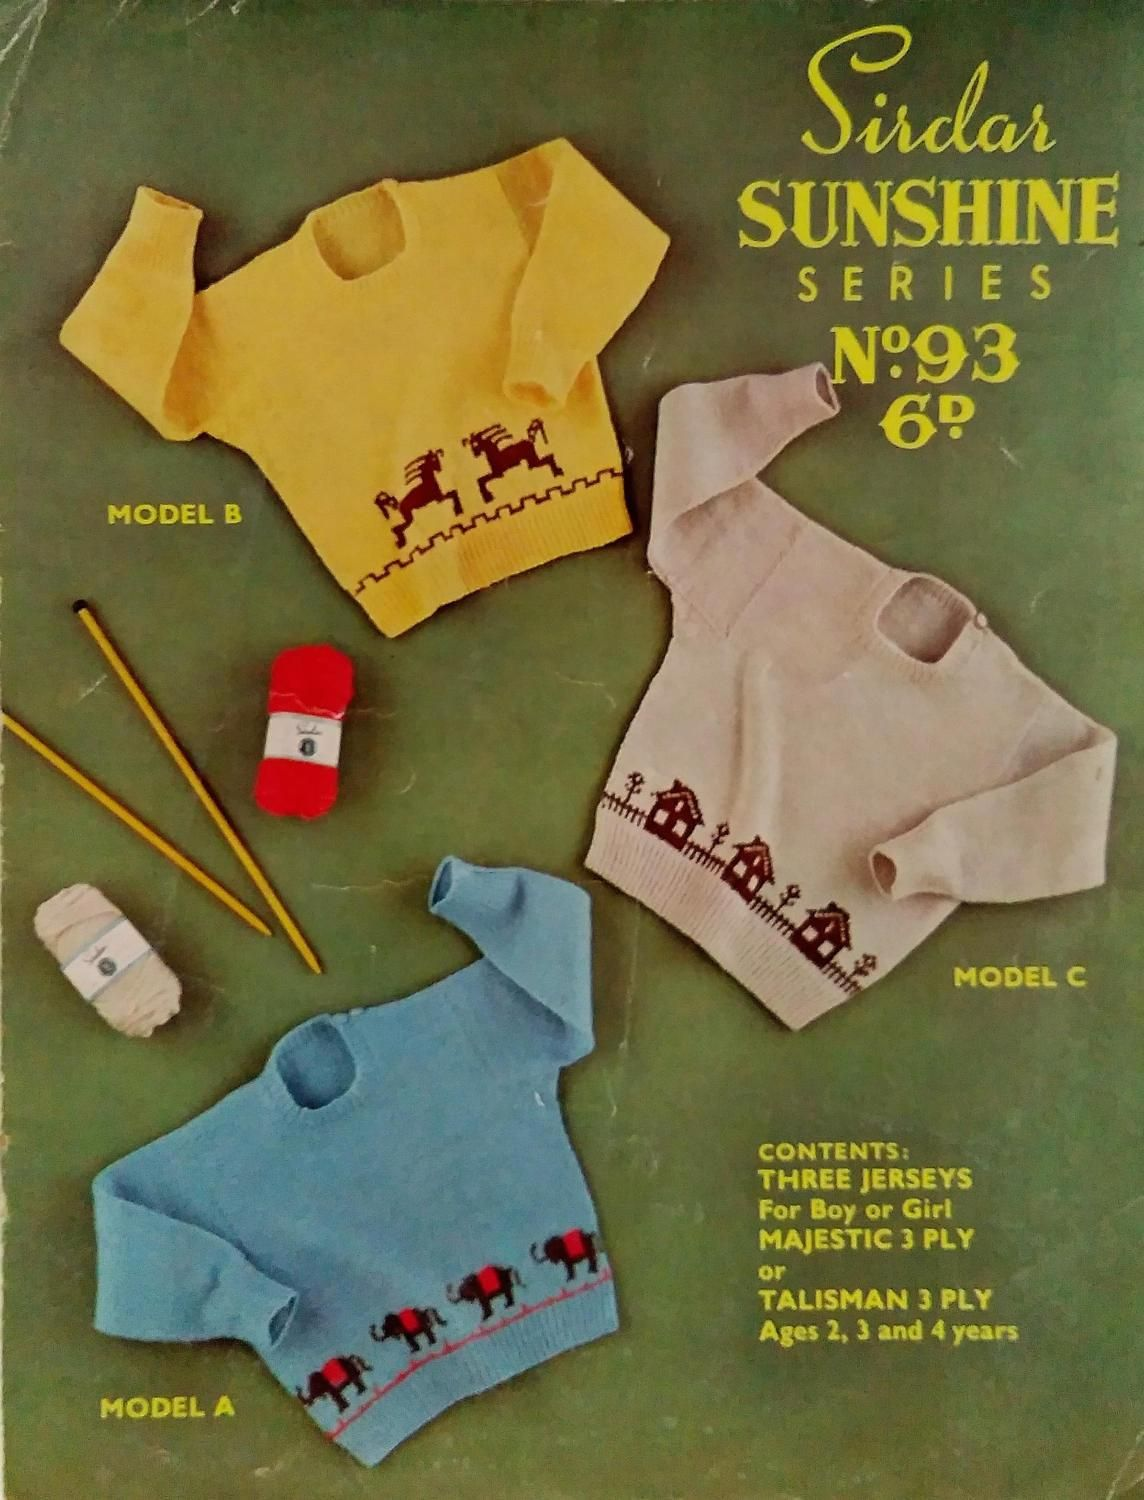 Sirdar childrens knitted jumpers 3 designs in 1 pattern sirdar childrens knitted jumpers 3 designs in 1 pattern childrens knitting pattern kids bankloansurffo Image collections